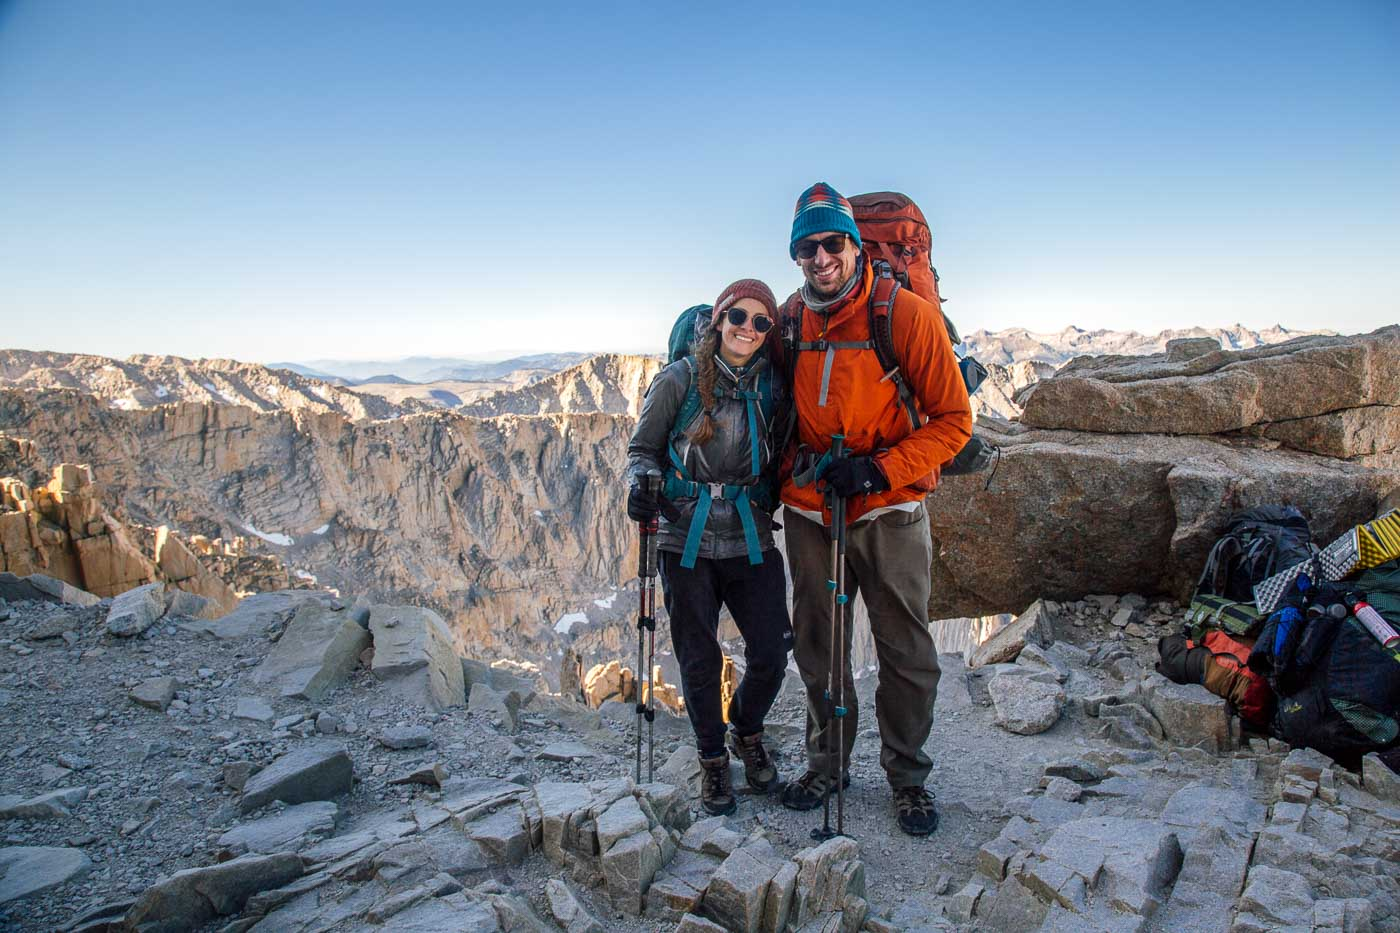 Megan and Michael wearing backpacking packs in the mountains